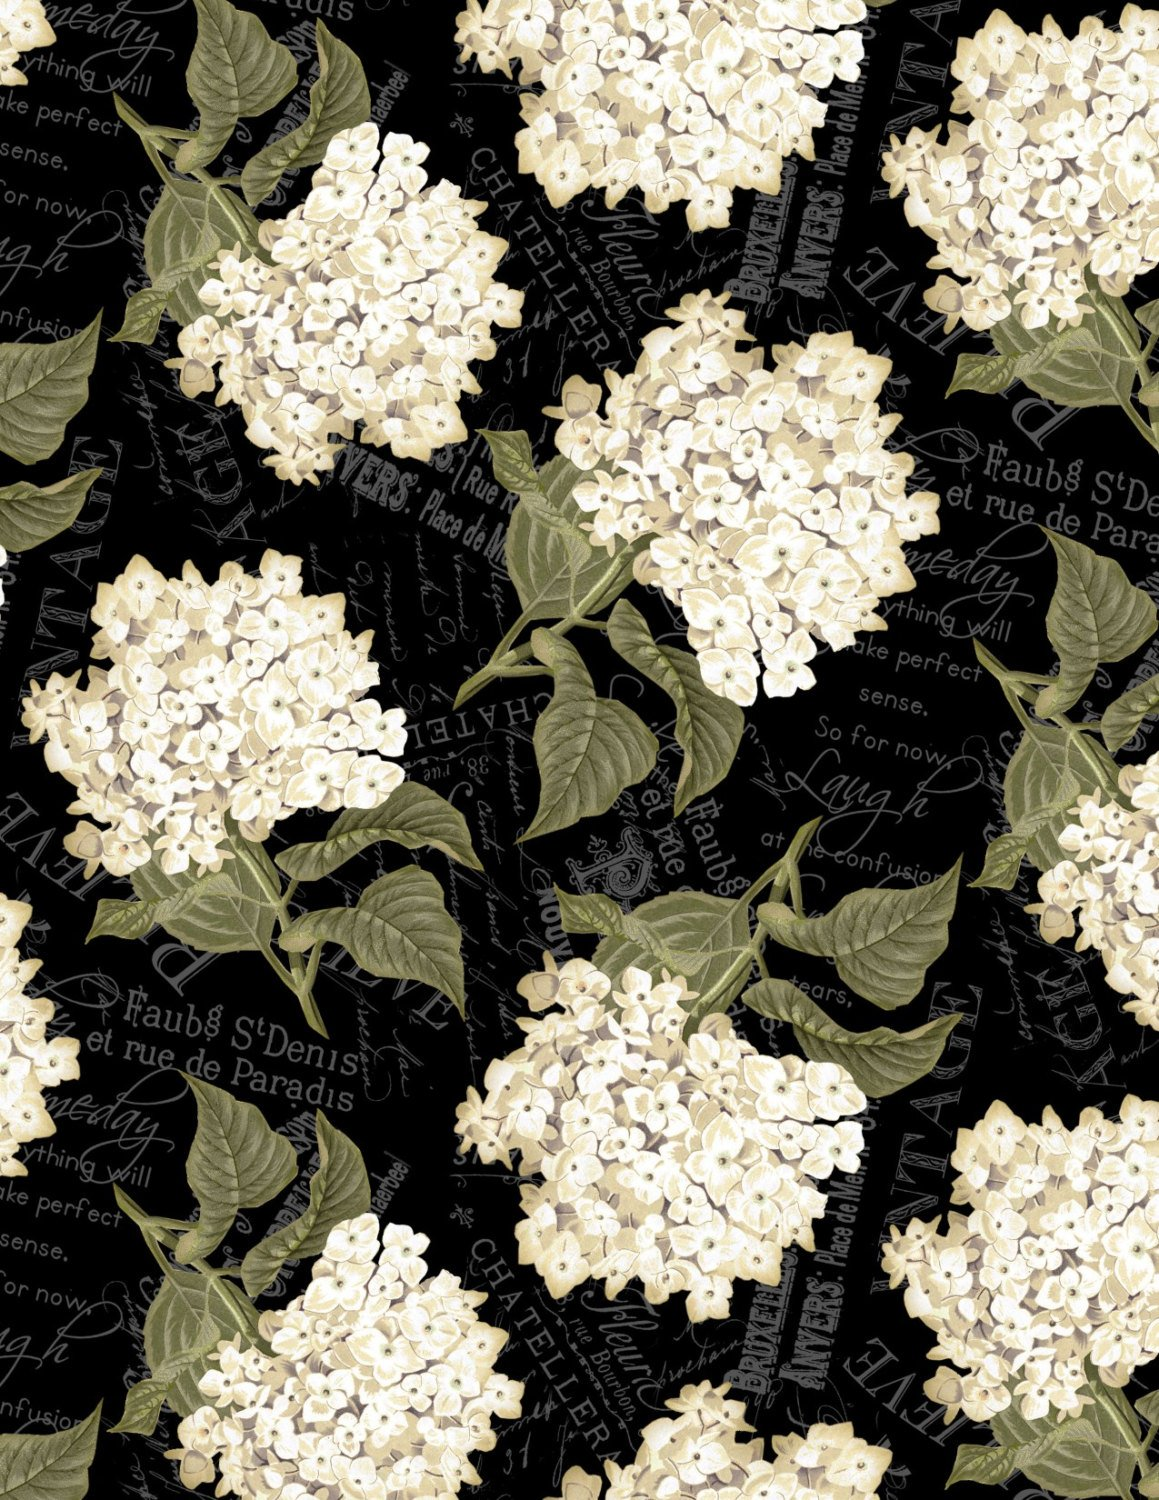 Wilmington Prints - Vintage Garden - Black w/ Large Floral